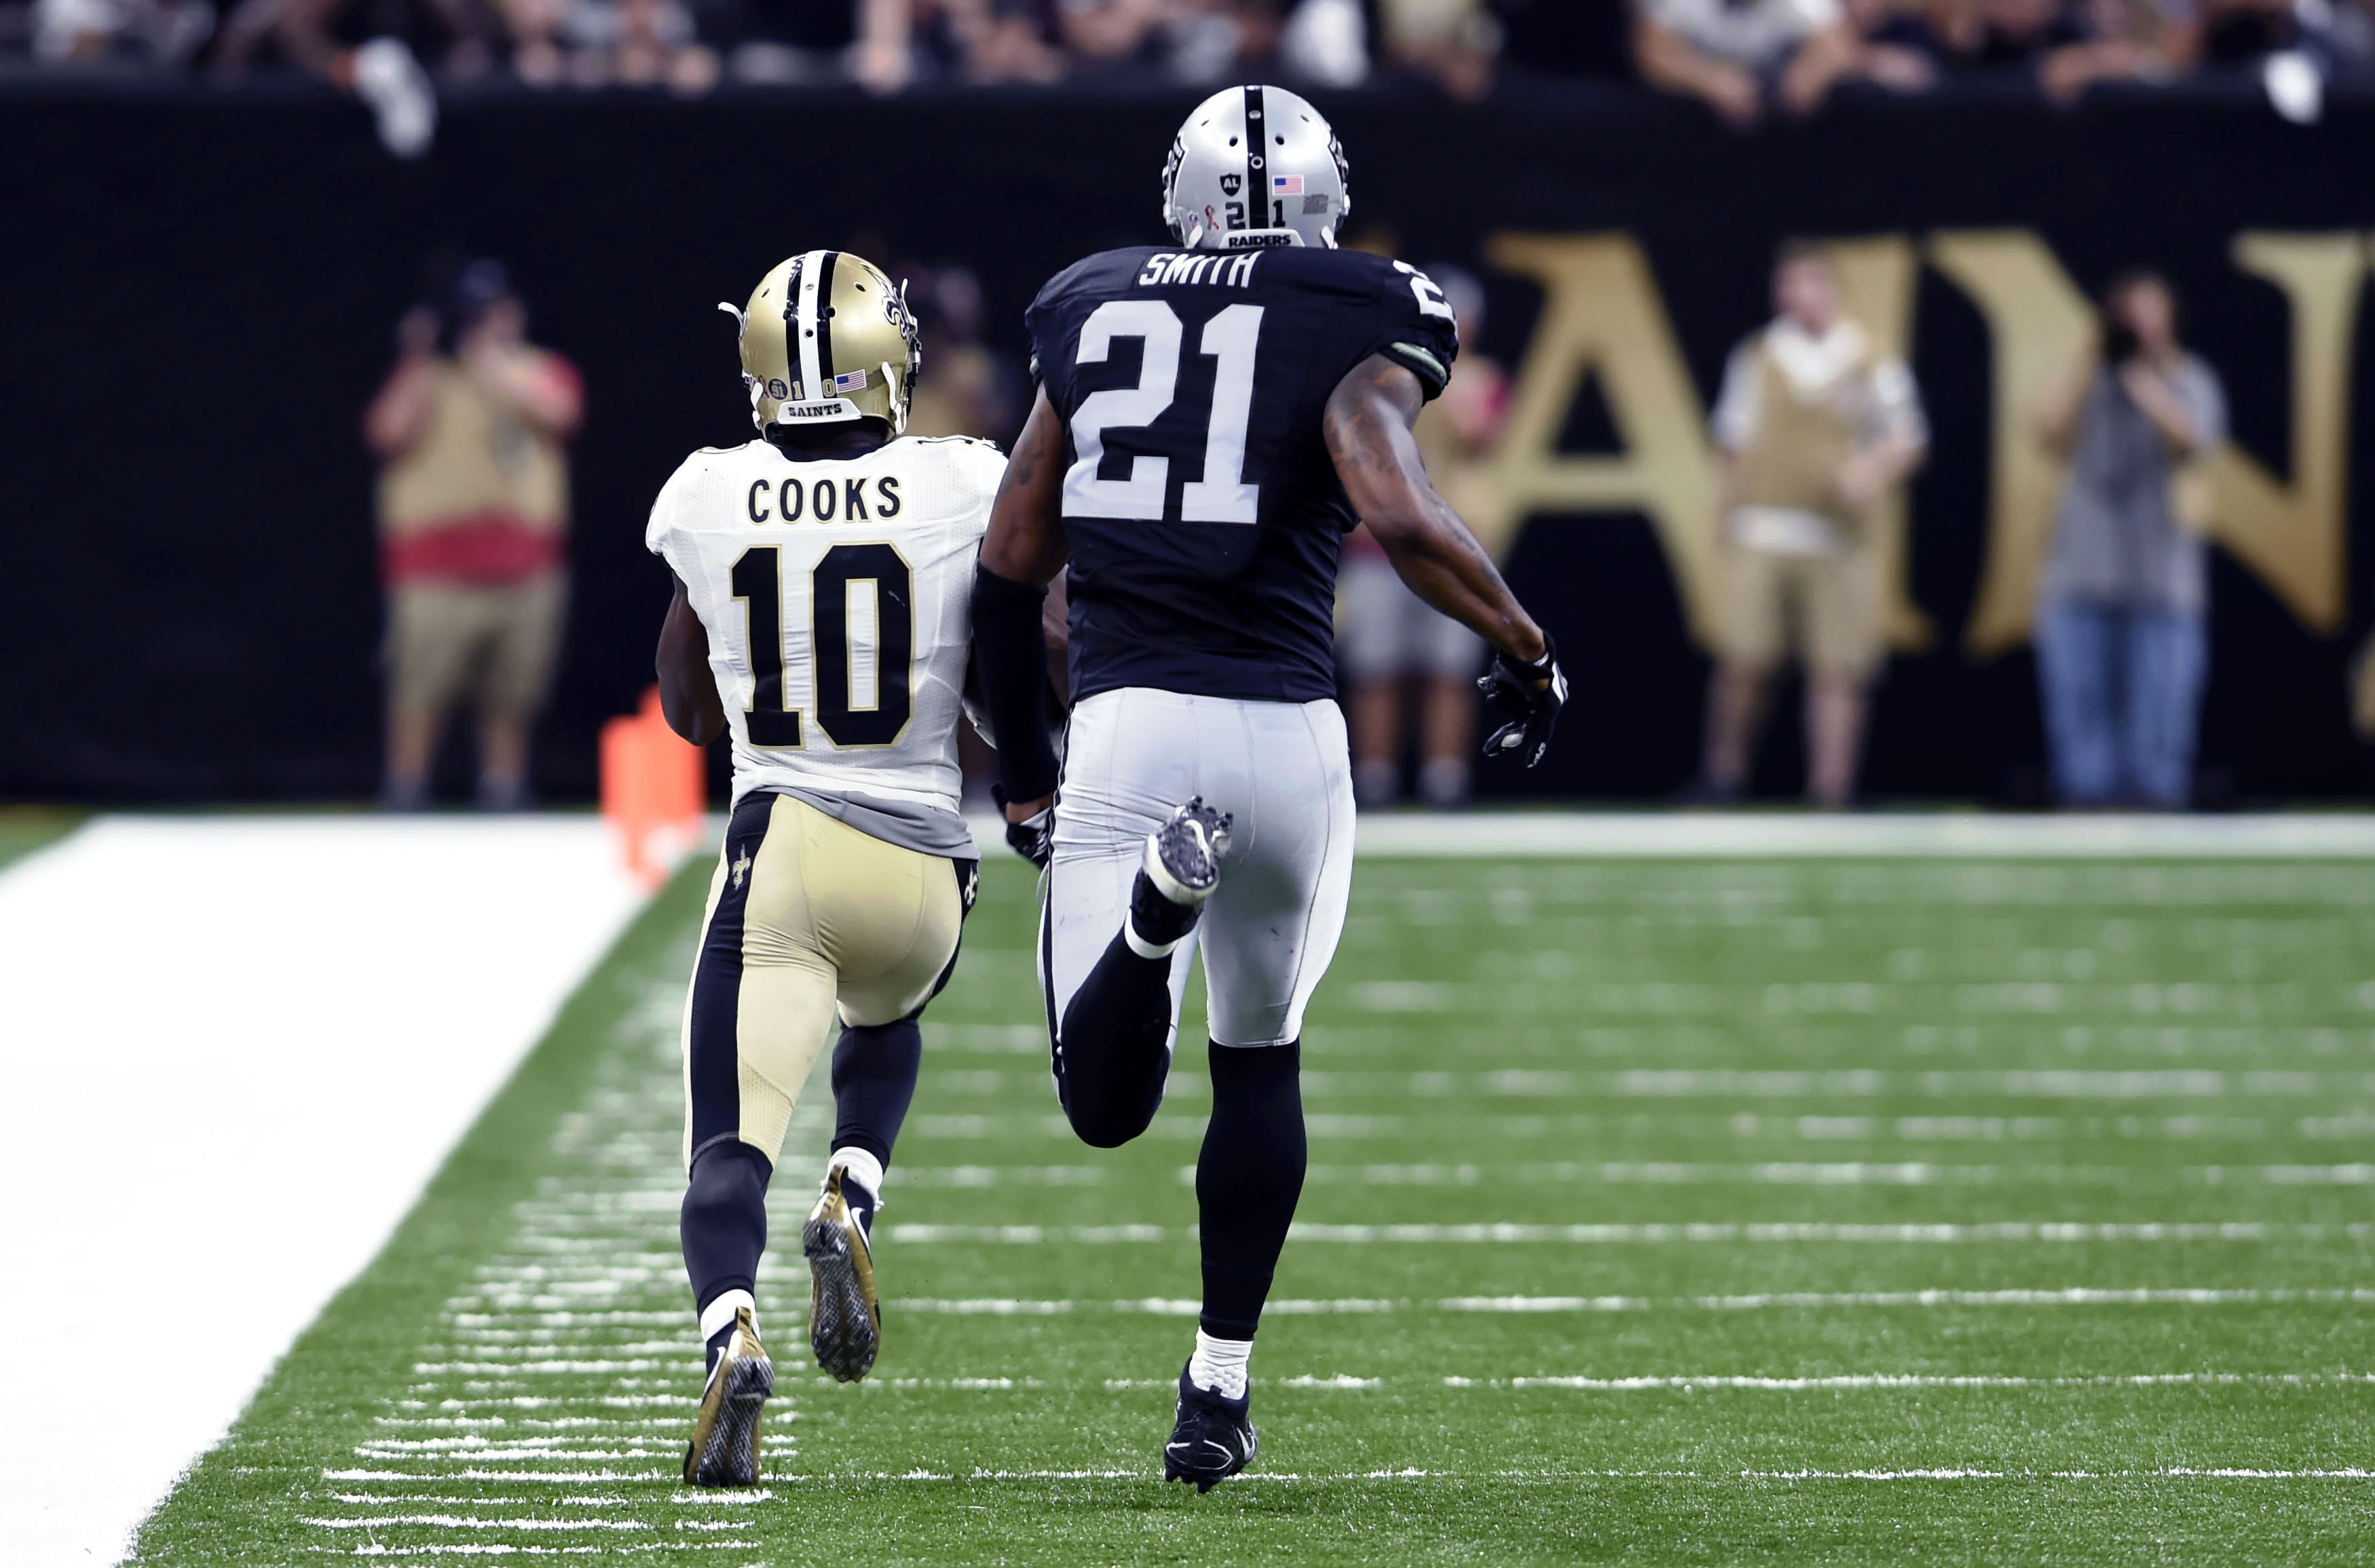 New Orleans Saints wide receiver Brandin Cooks (10) pulls in a touchdown reception in front of Oakland Raiders defensive back Sean Smith (21) in the second half of an NFL football game in New Orleans, Sunday, Sept. 11, 2016. The play was longer than any i